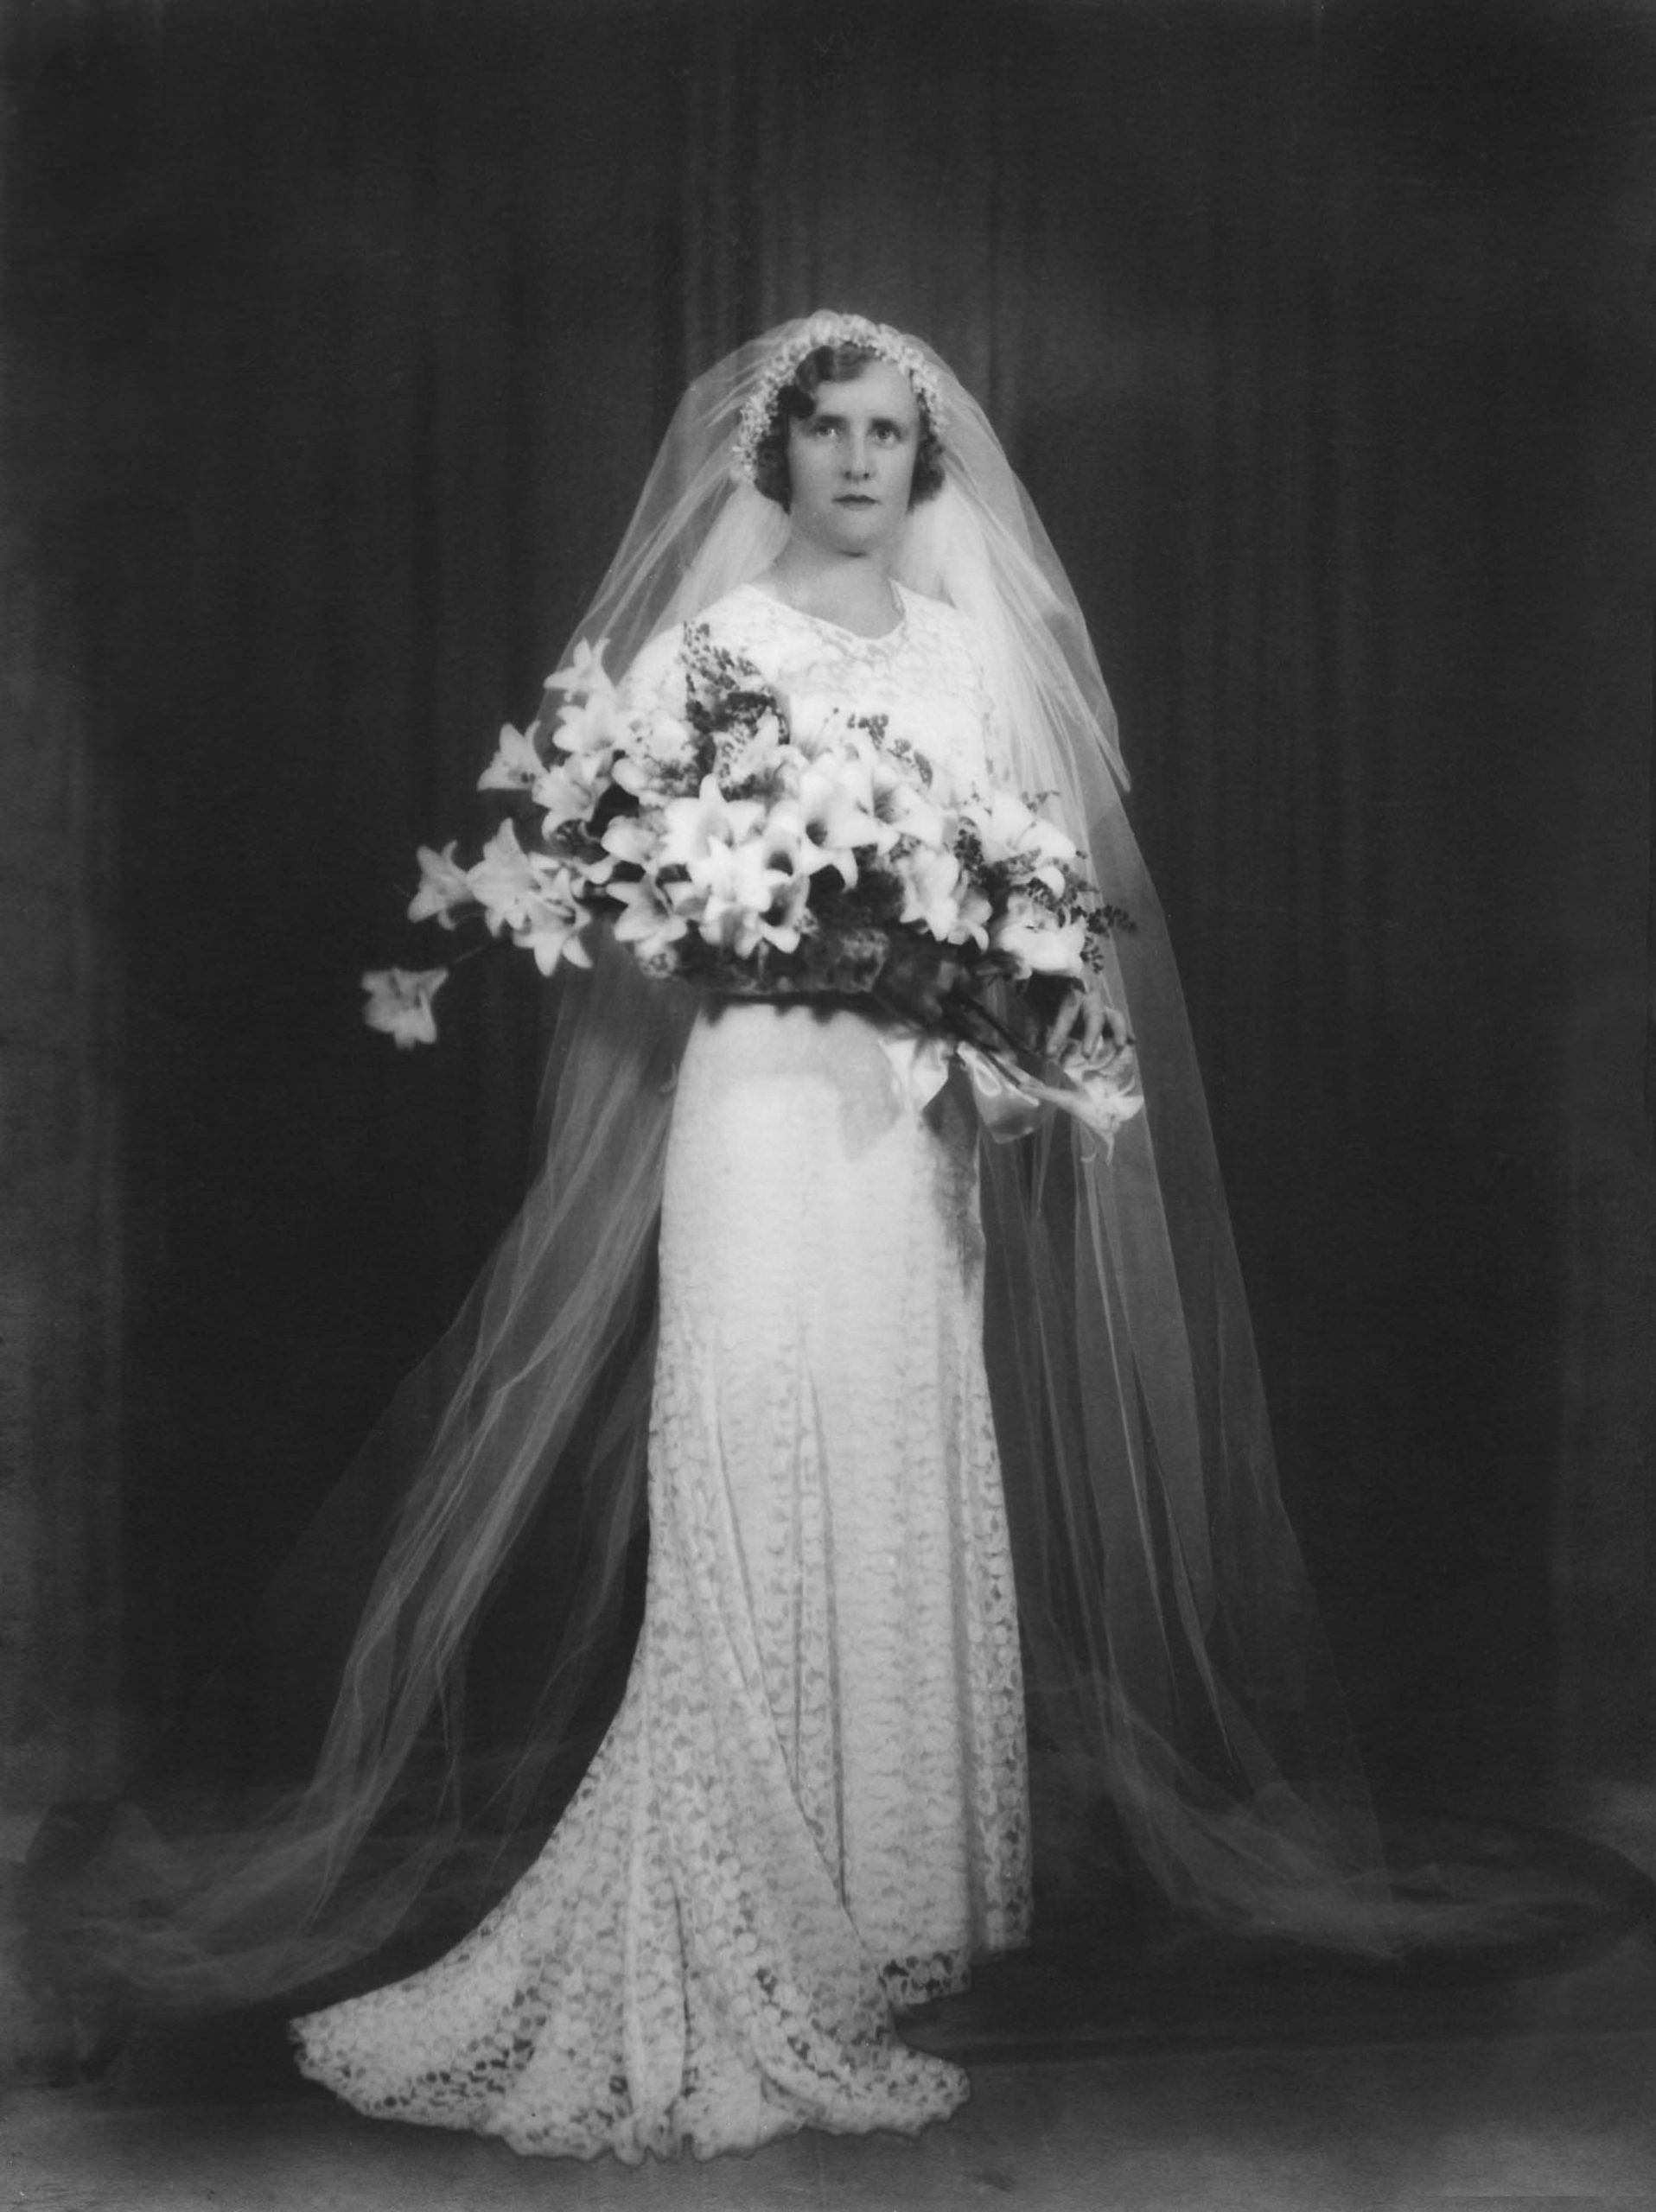 My mother, Miss Beatrice Violet Jullyan (born in 1906) married Mr James Chester Draper on December 16th 1933 at St Mary's in Caulfield